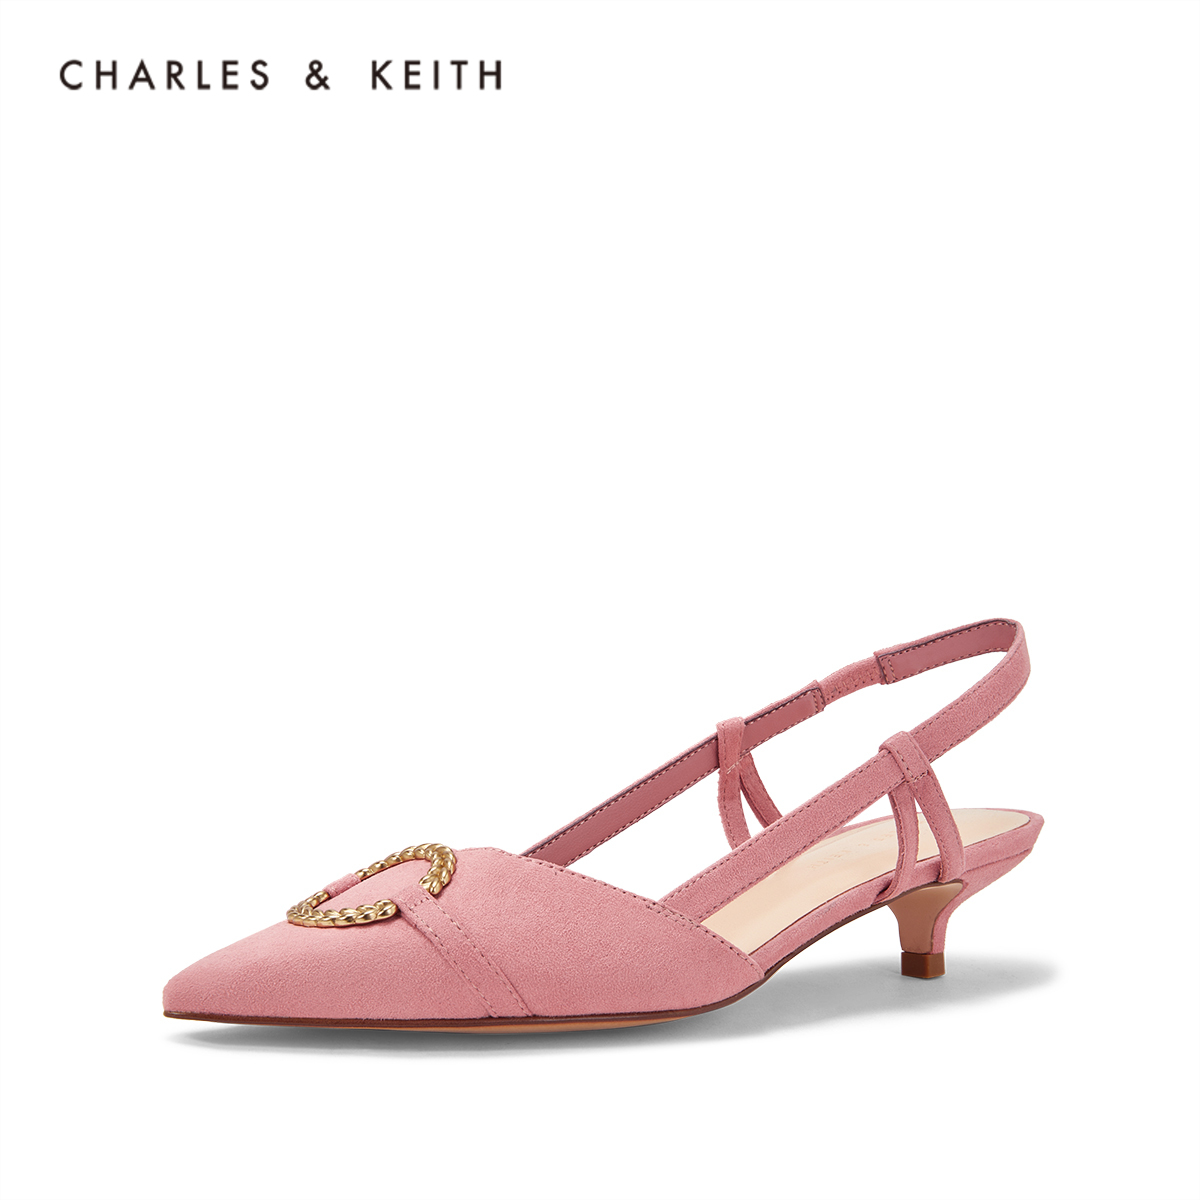 CHARLES & KEITH Sandals CK1-60580130 Ring Decorative Lady's Tippy Cat heel Sandals